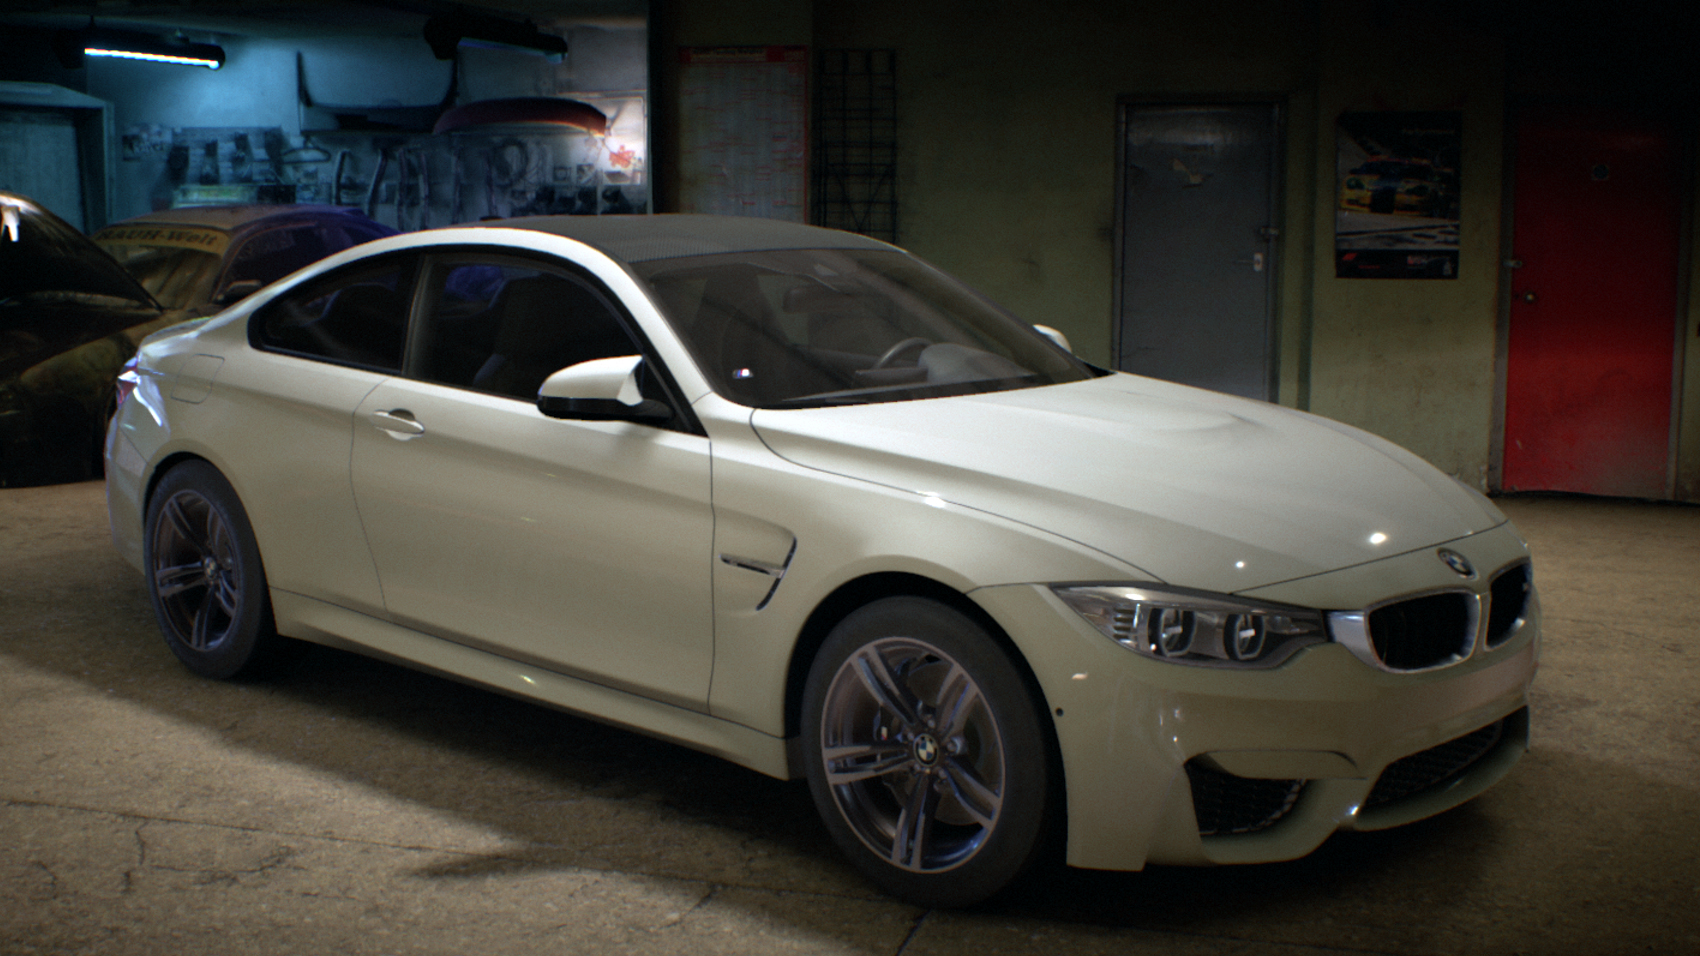 Bmw m4 f82 need for speed wiki fandom powered by wikia m4 f82 malvernweather Choice Image